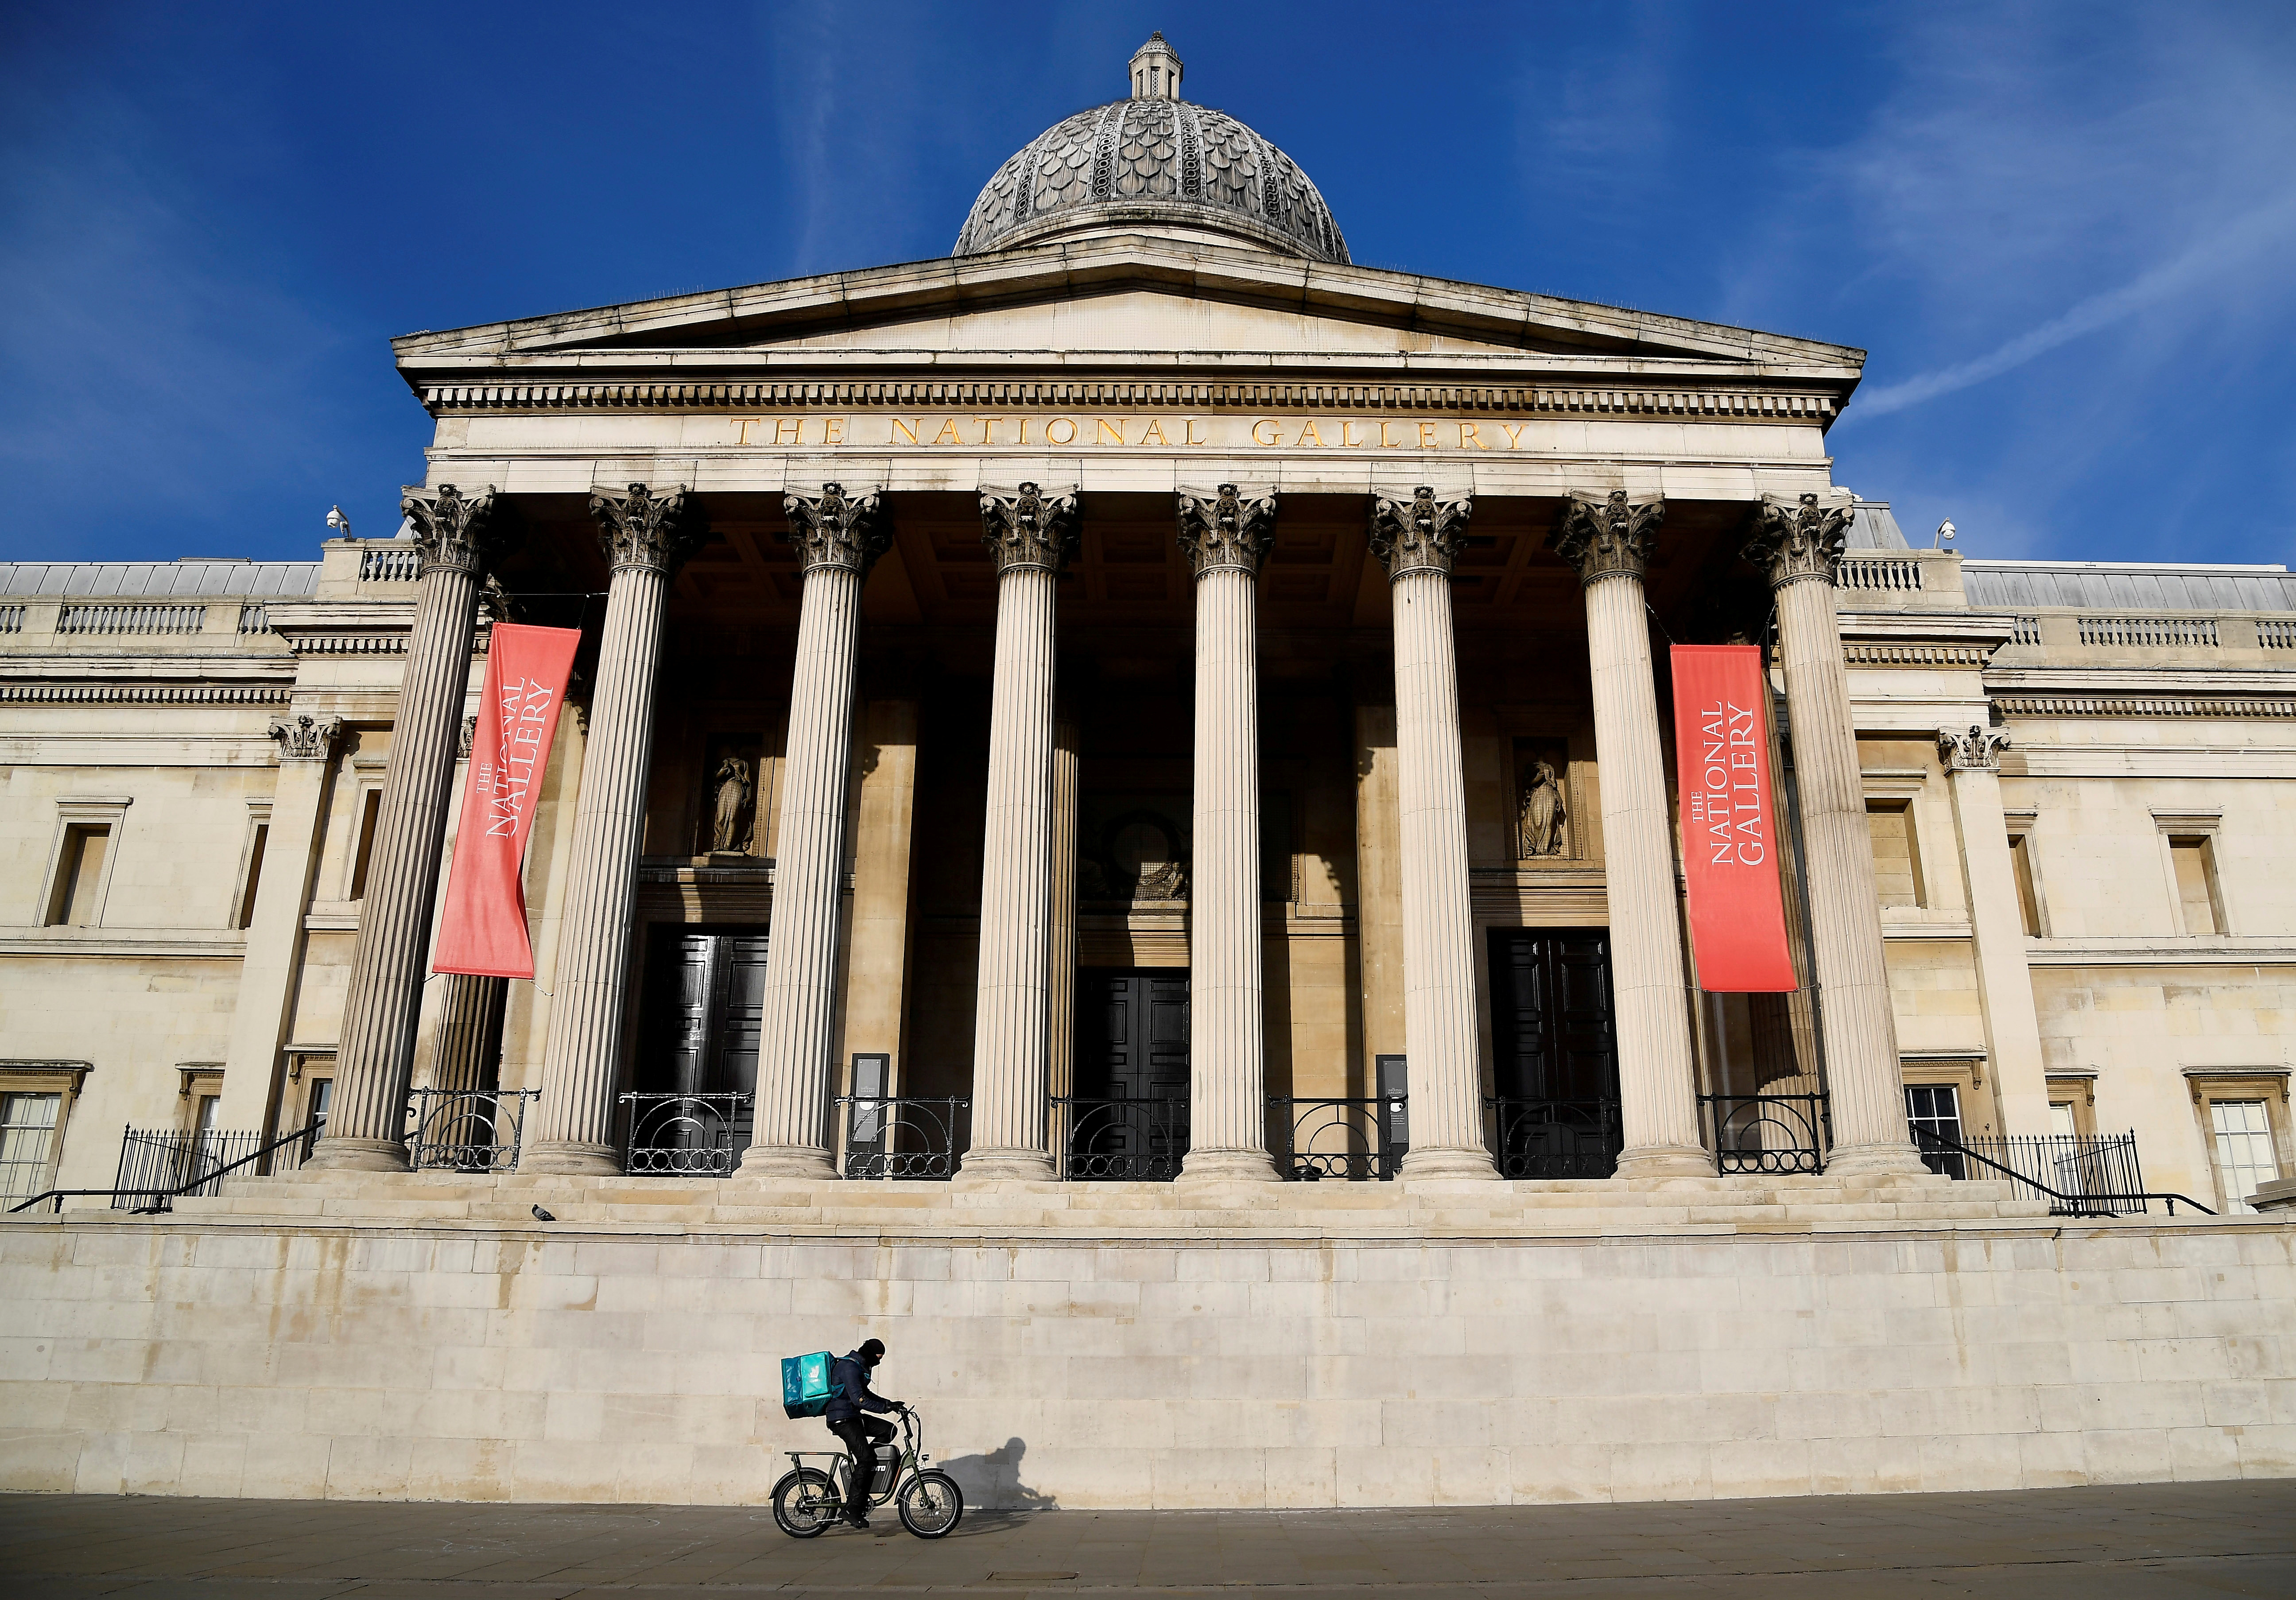 Deliveroo rider cycles past the closed National Gallery amidst the COVID-19 pandemic lockdown in London, Britain, January 7, 2021. REUTERS/Toby Melville/File Photo